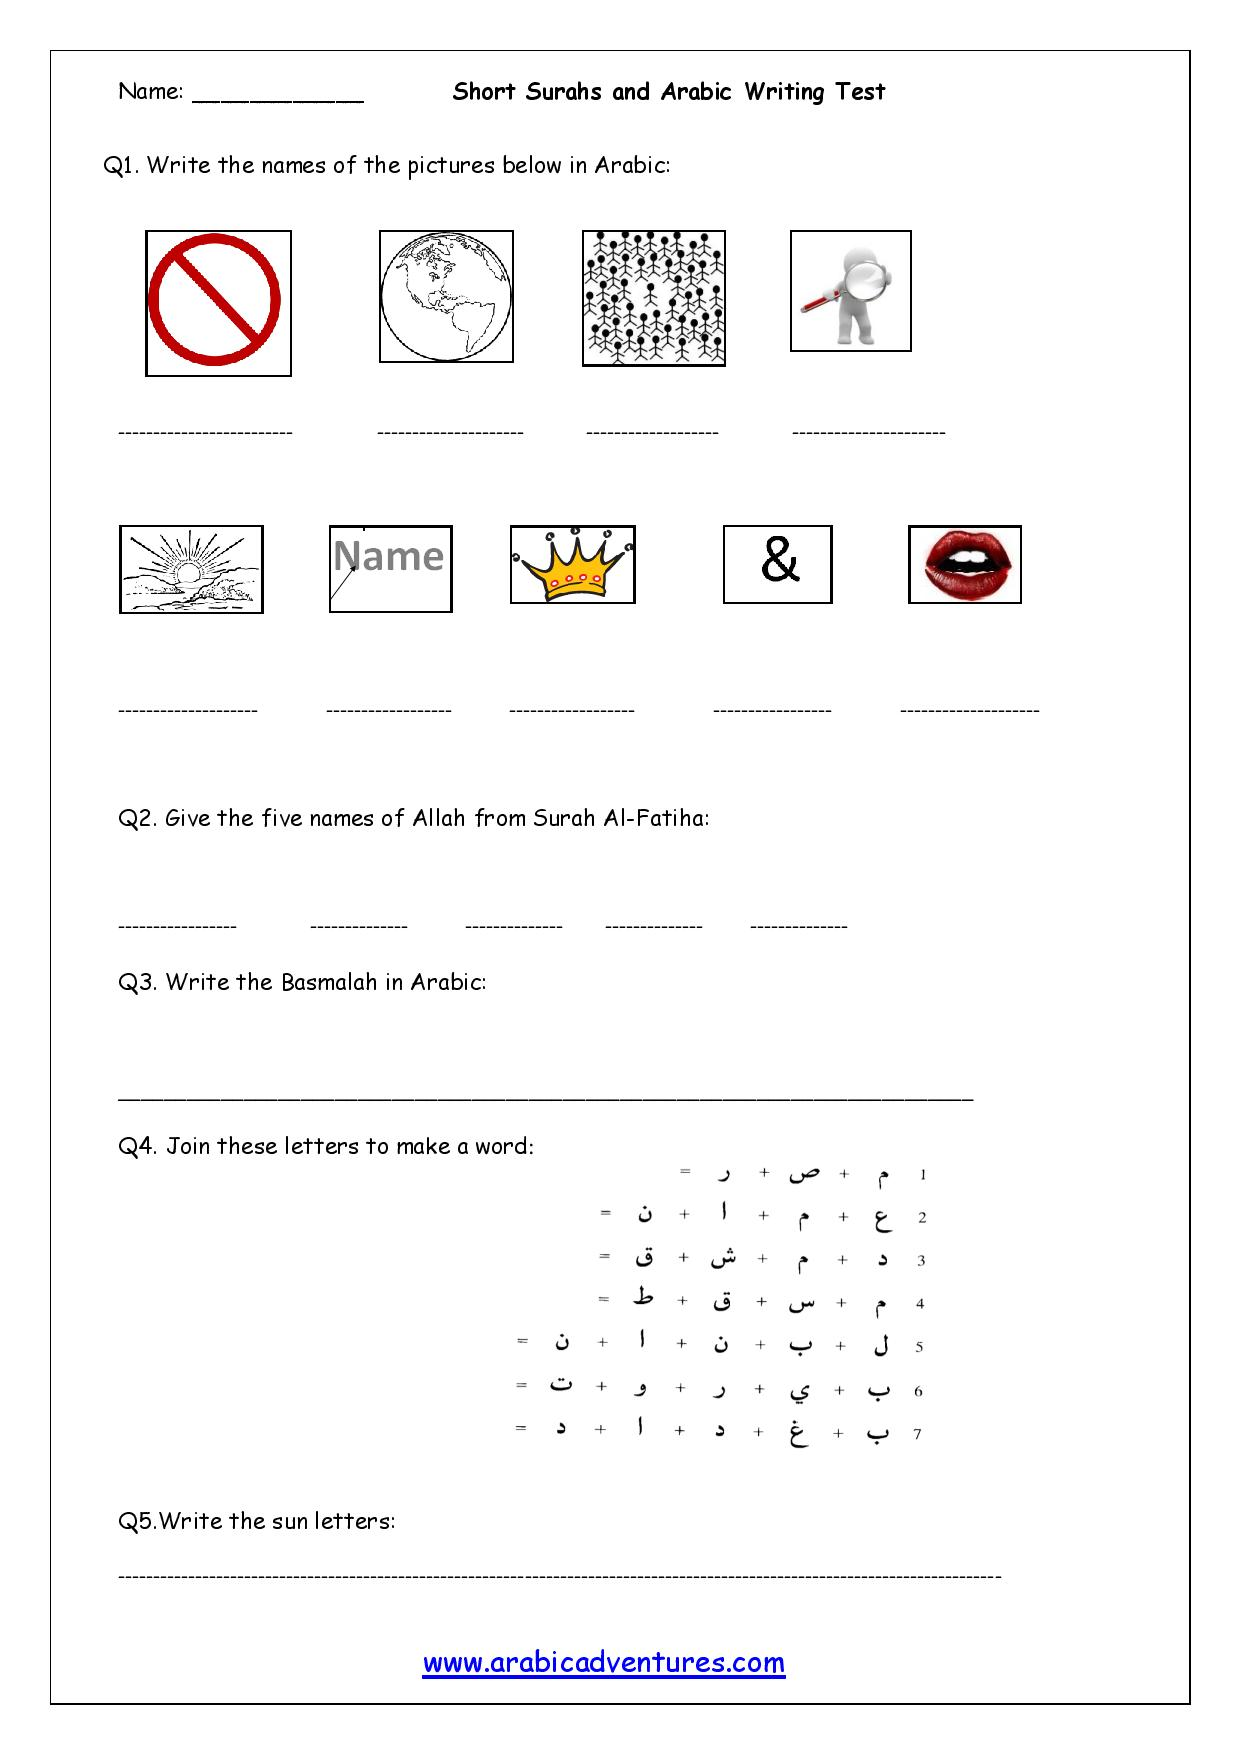 Arabic Worksheet Short Surahs